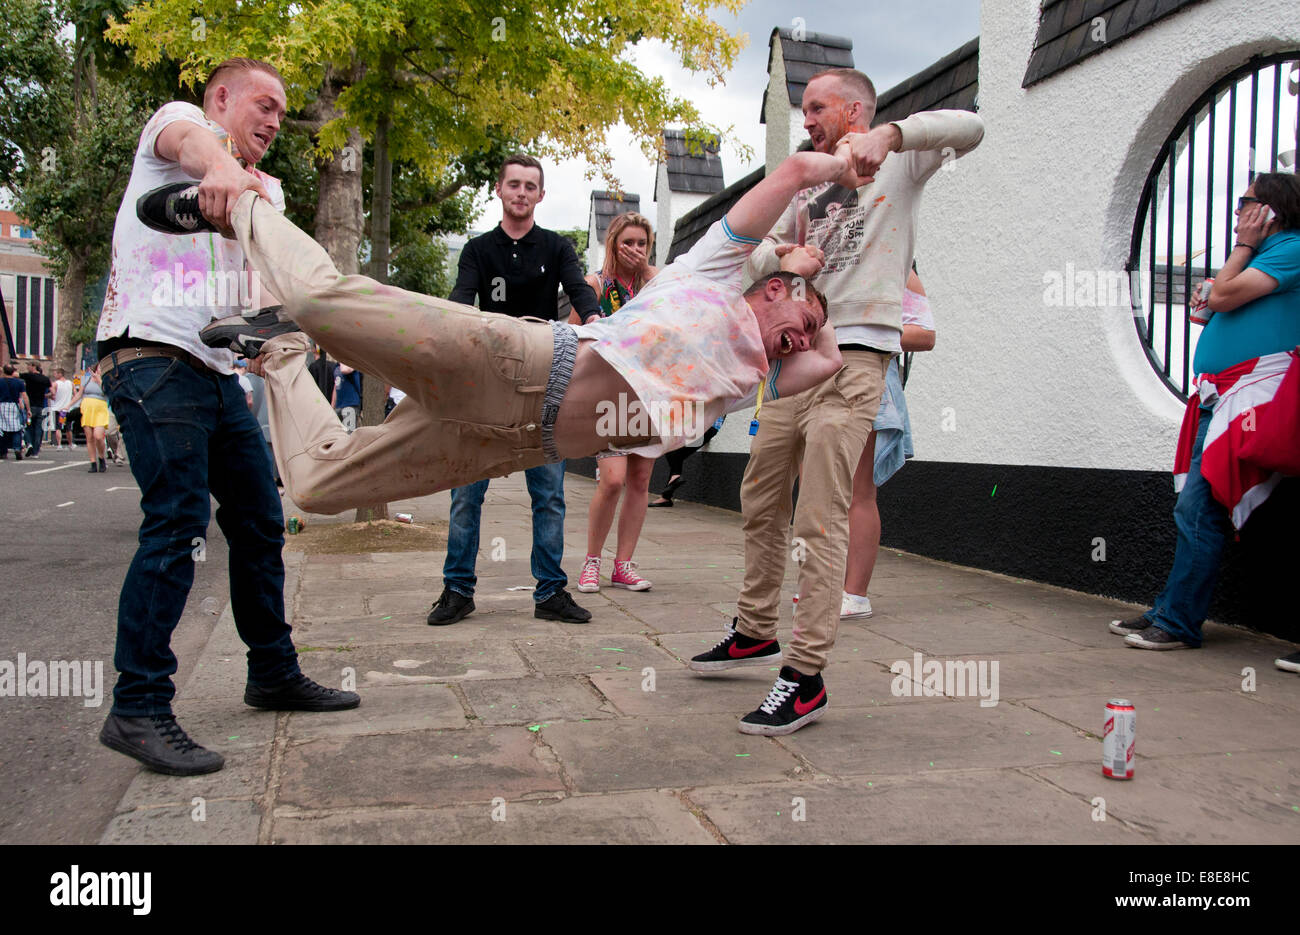 Two men swinging a third in street at Annual Notting Hill Carnival in London 2014 - Stock Image